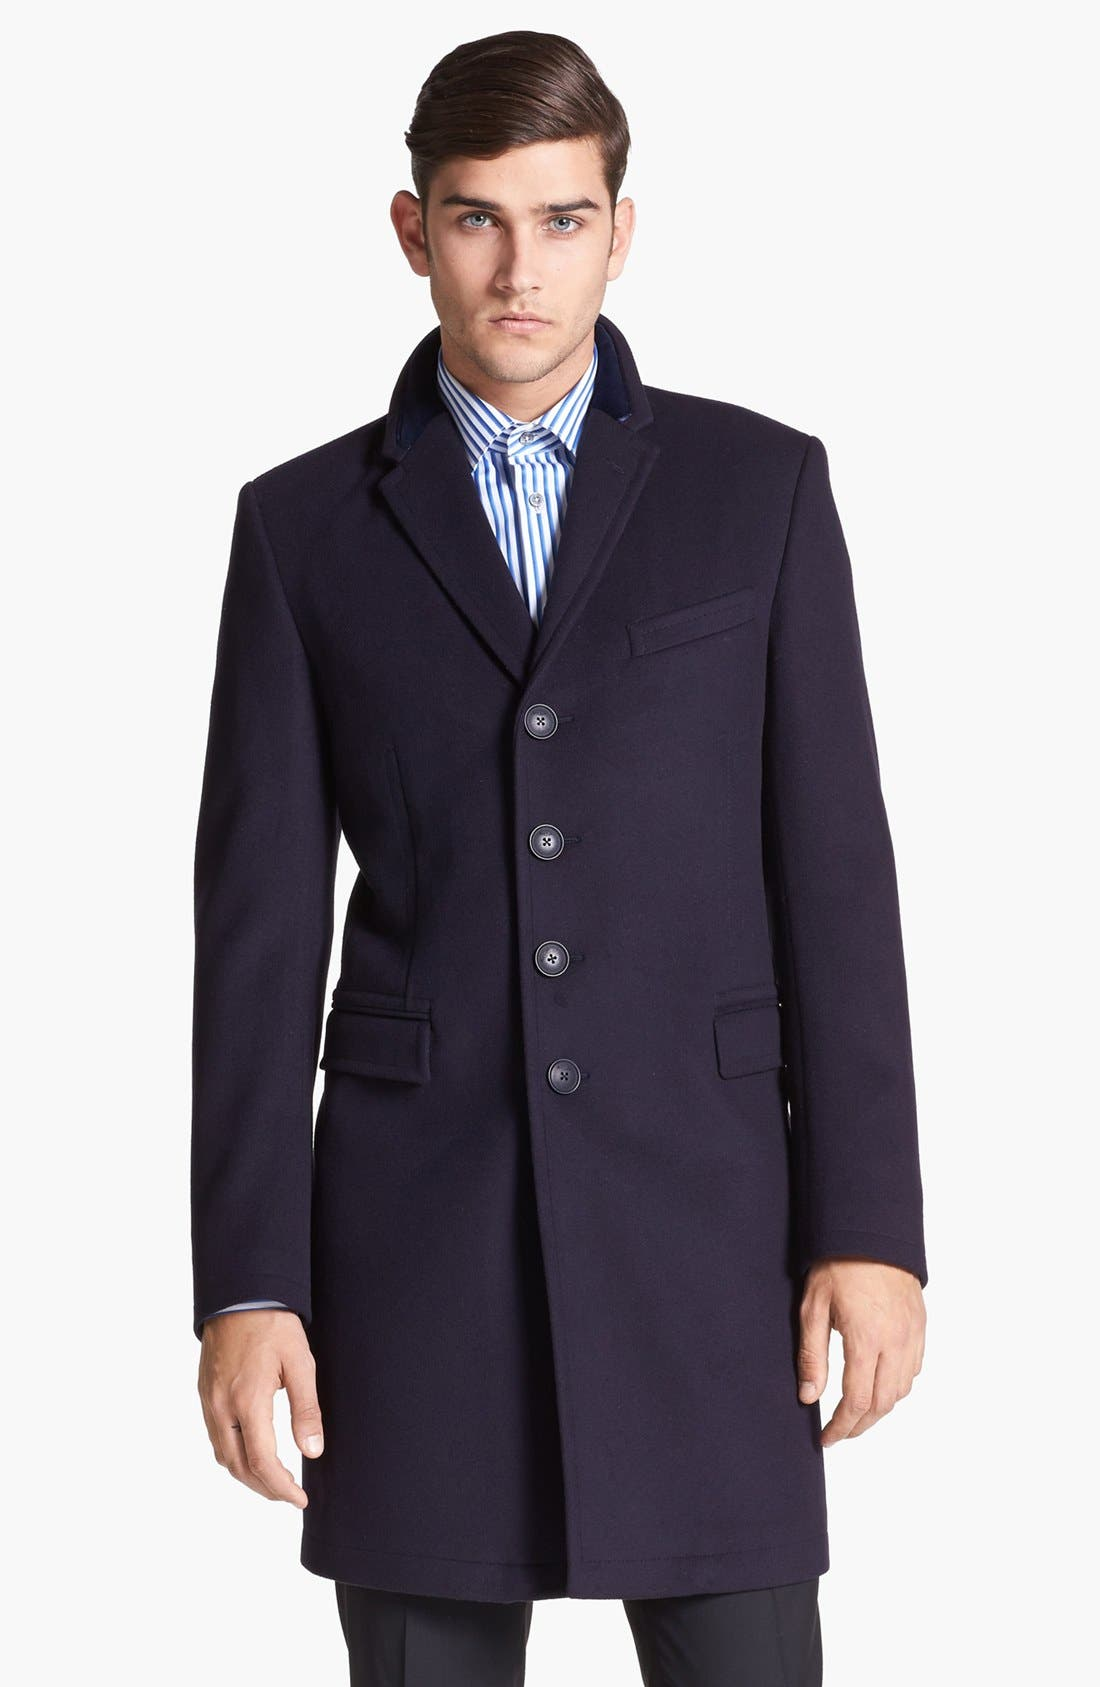 Main Image - Paul Smith London Tailored Wool Topcoat